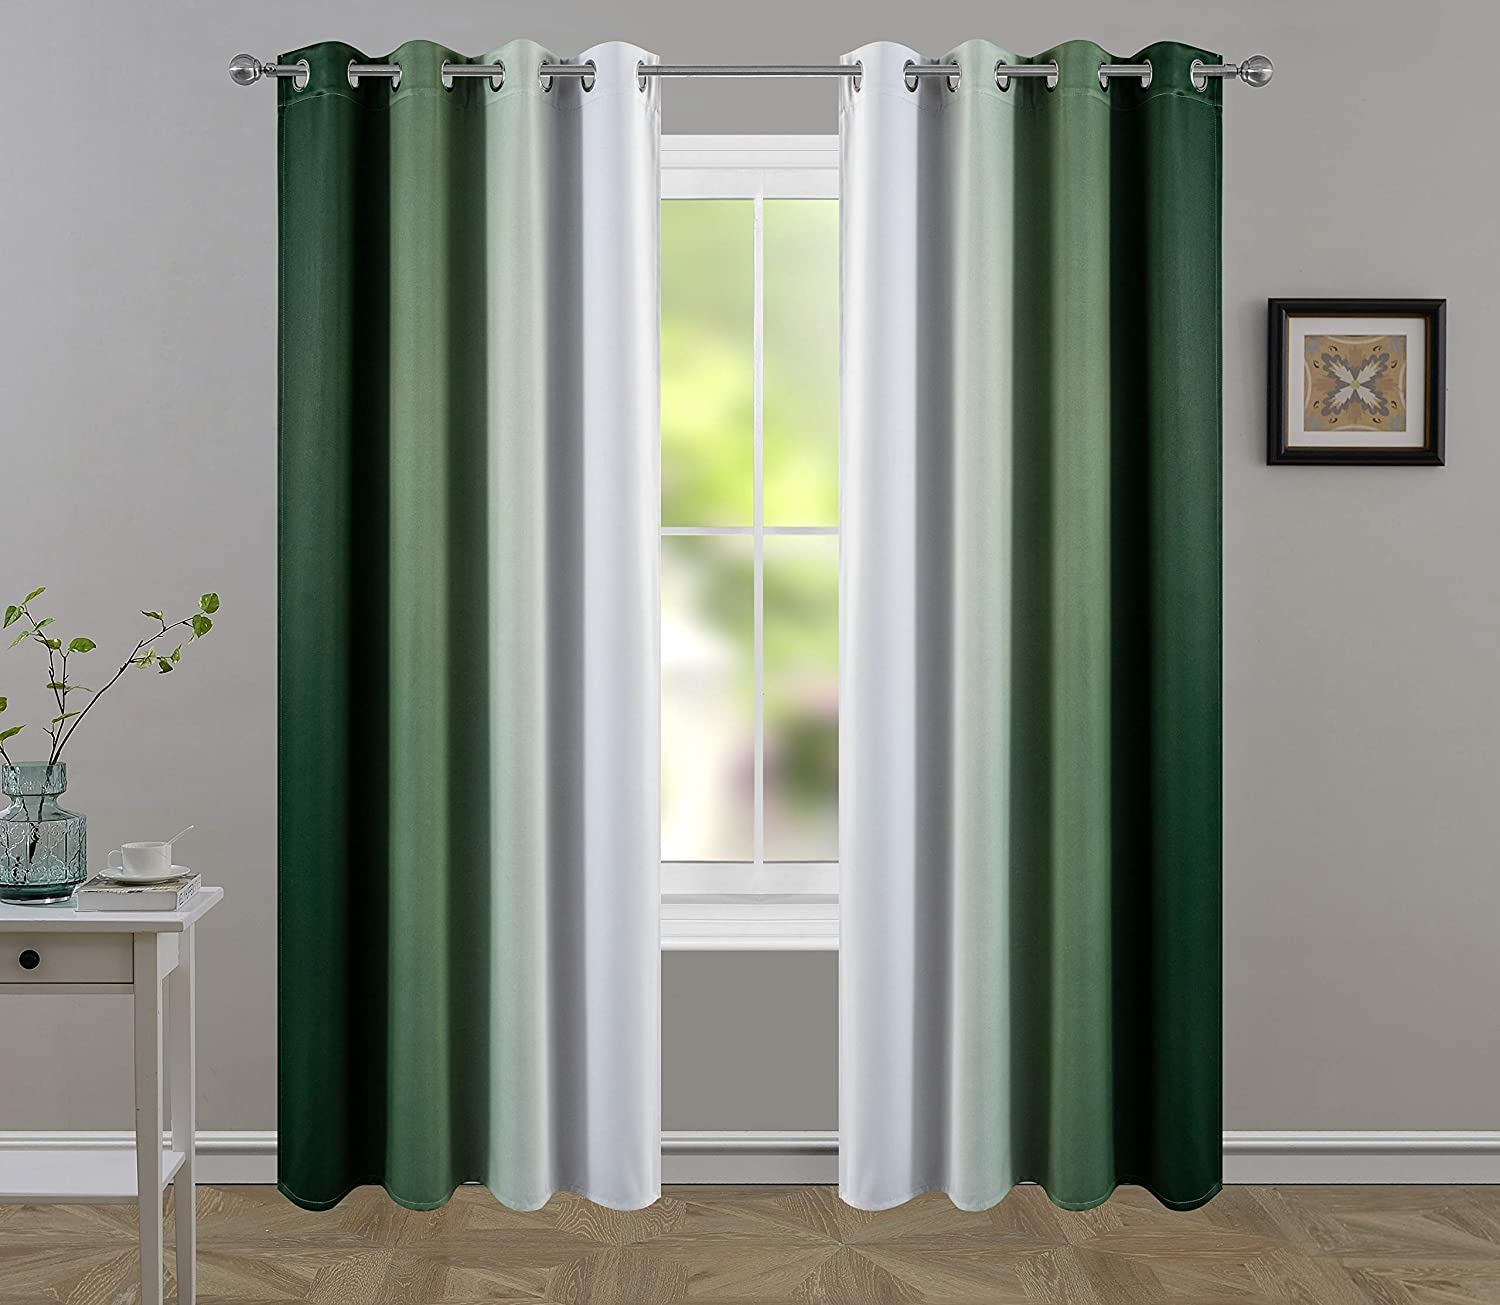 HHMY Blackout/Light Blocking Curtains for Living Room/Bedroom.Gradient Color Darkening Curtains Emerald Green Luxury Drapes Treatment 2 Panels(Emerald Green to Cream White,W52×L84